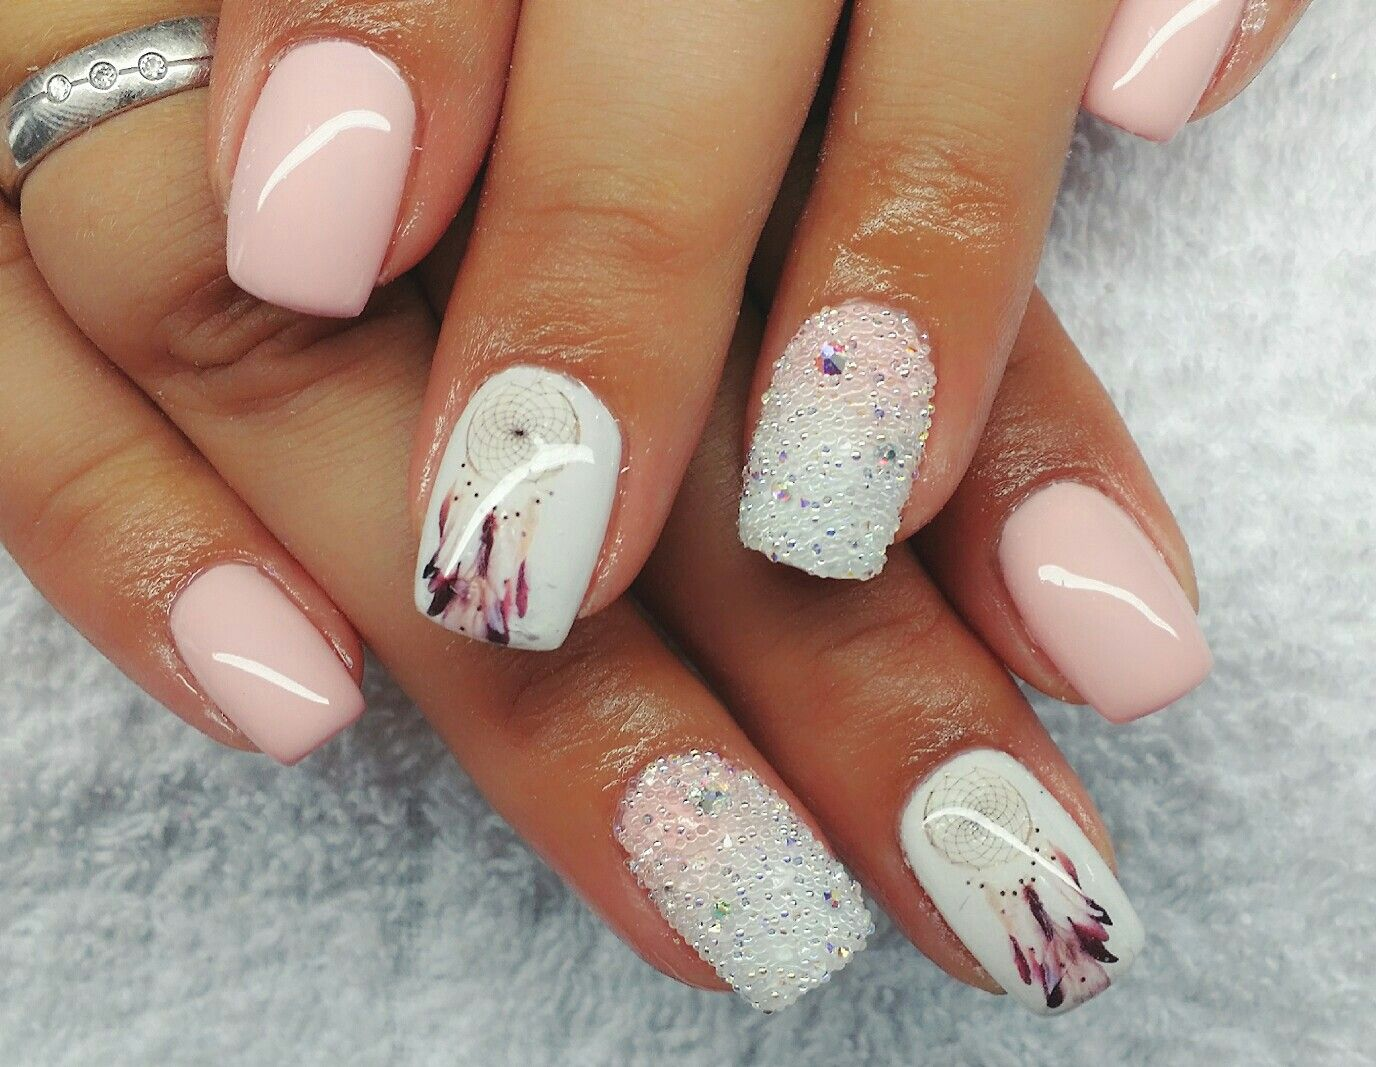 Nail Design Fullcover | Nails nails nails by me :) | Pinterest ...